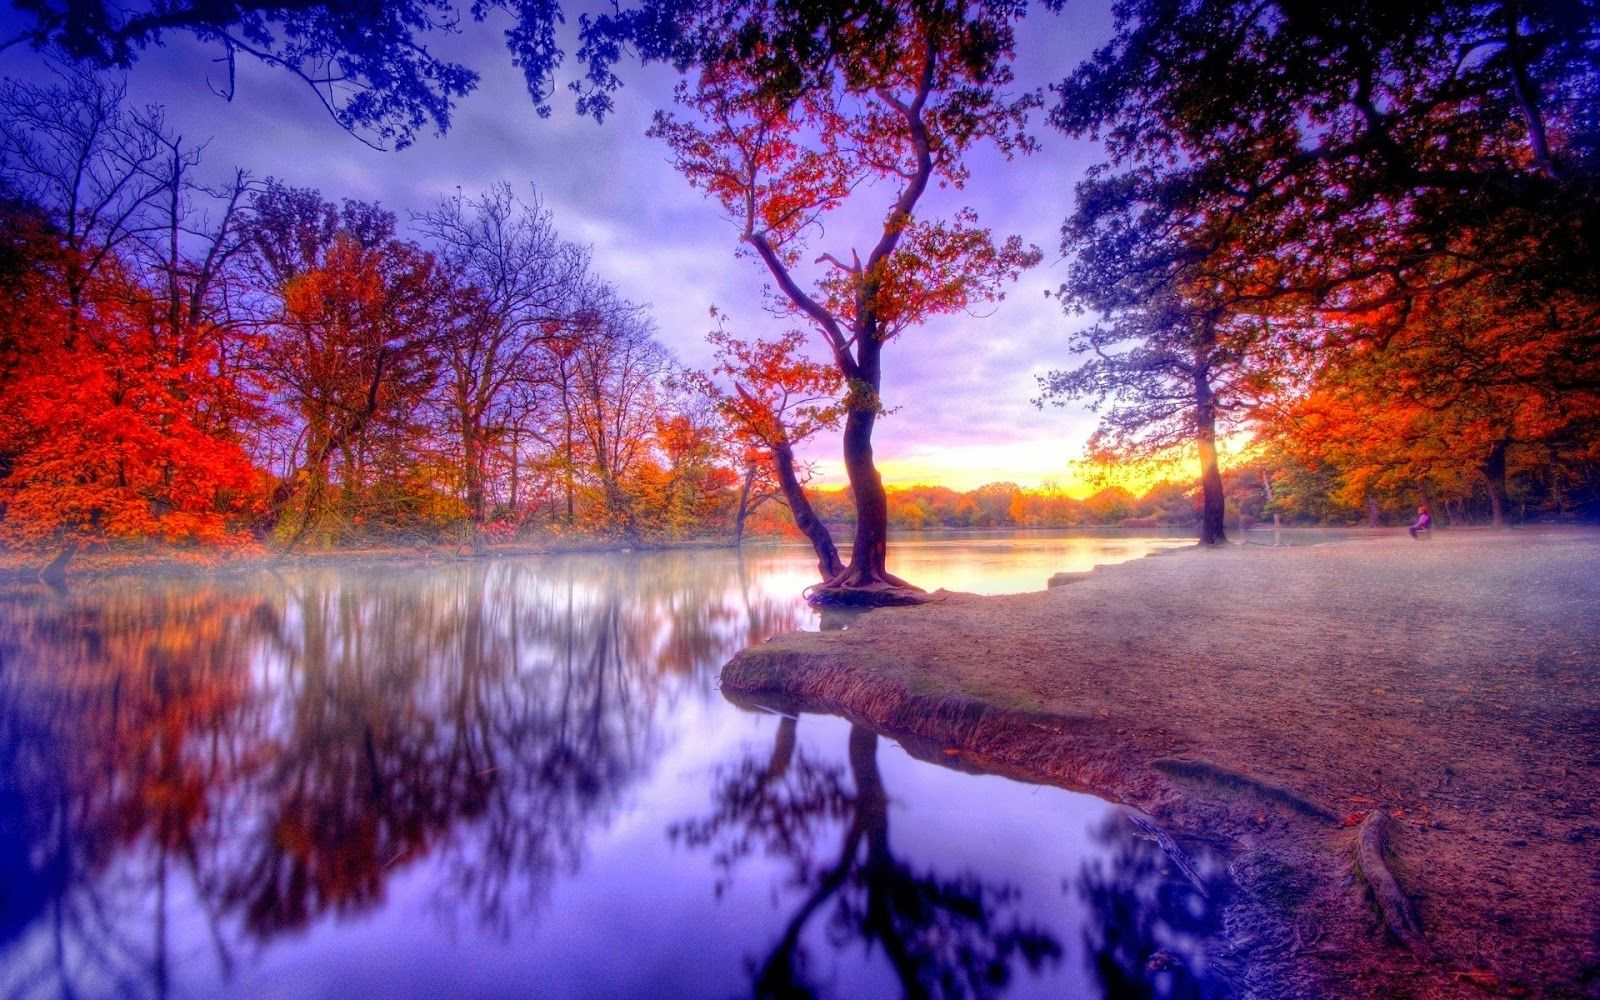 download live nature wallpapers for pc. some genuinely breathtaking scenes | romantic place lake full hd size nature wallpapers free downloads download live for pc